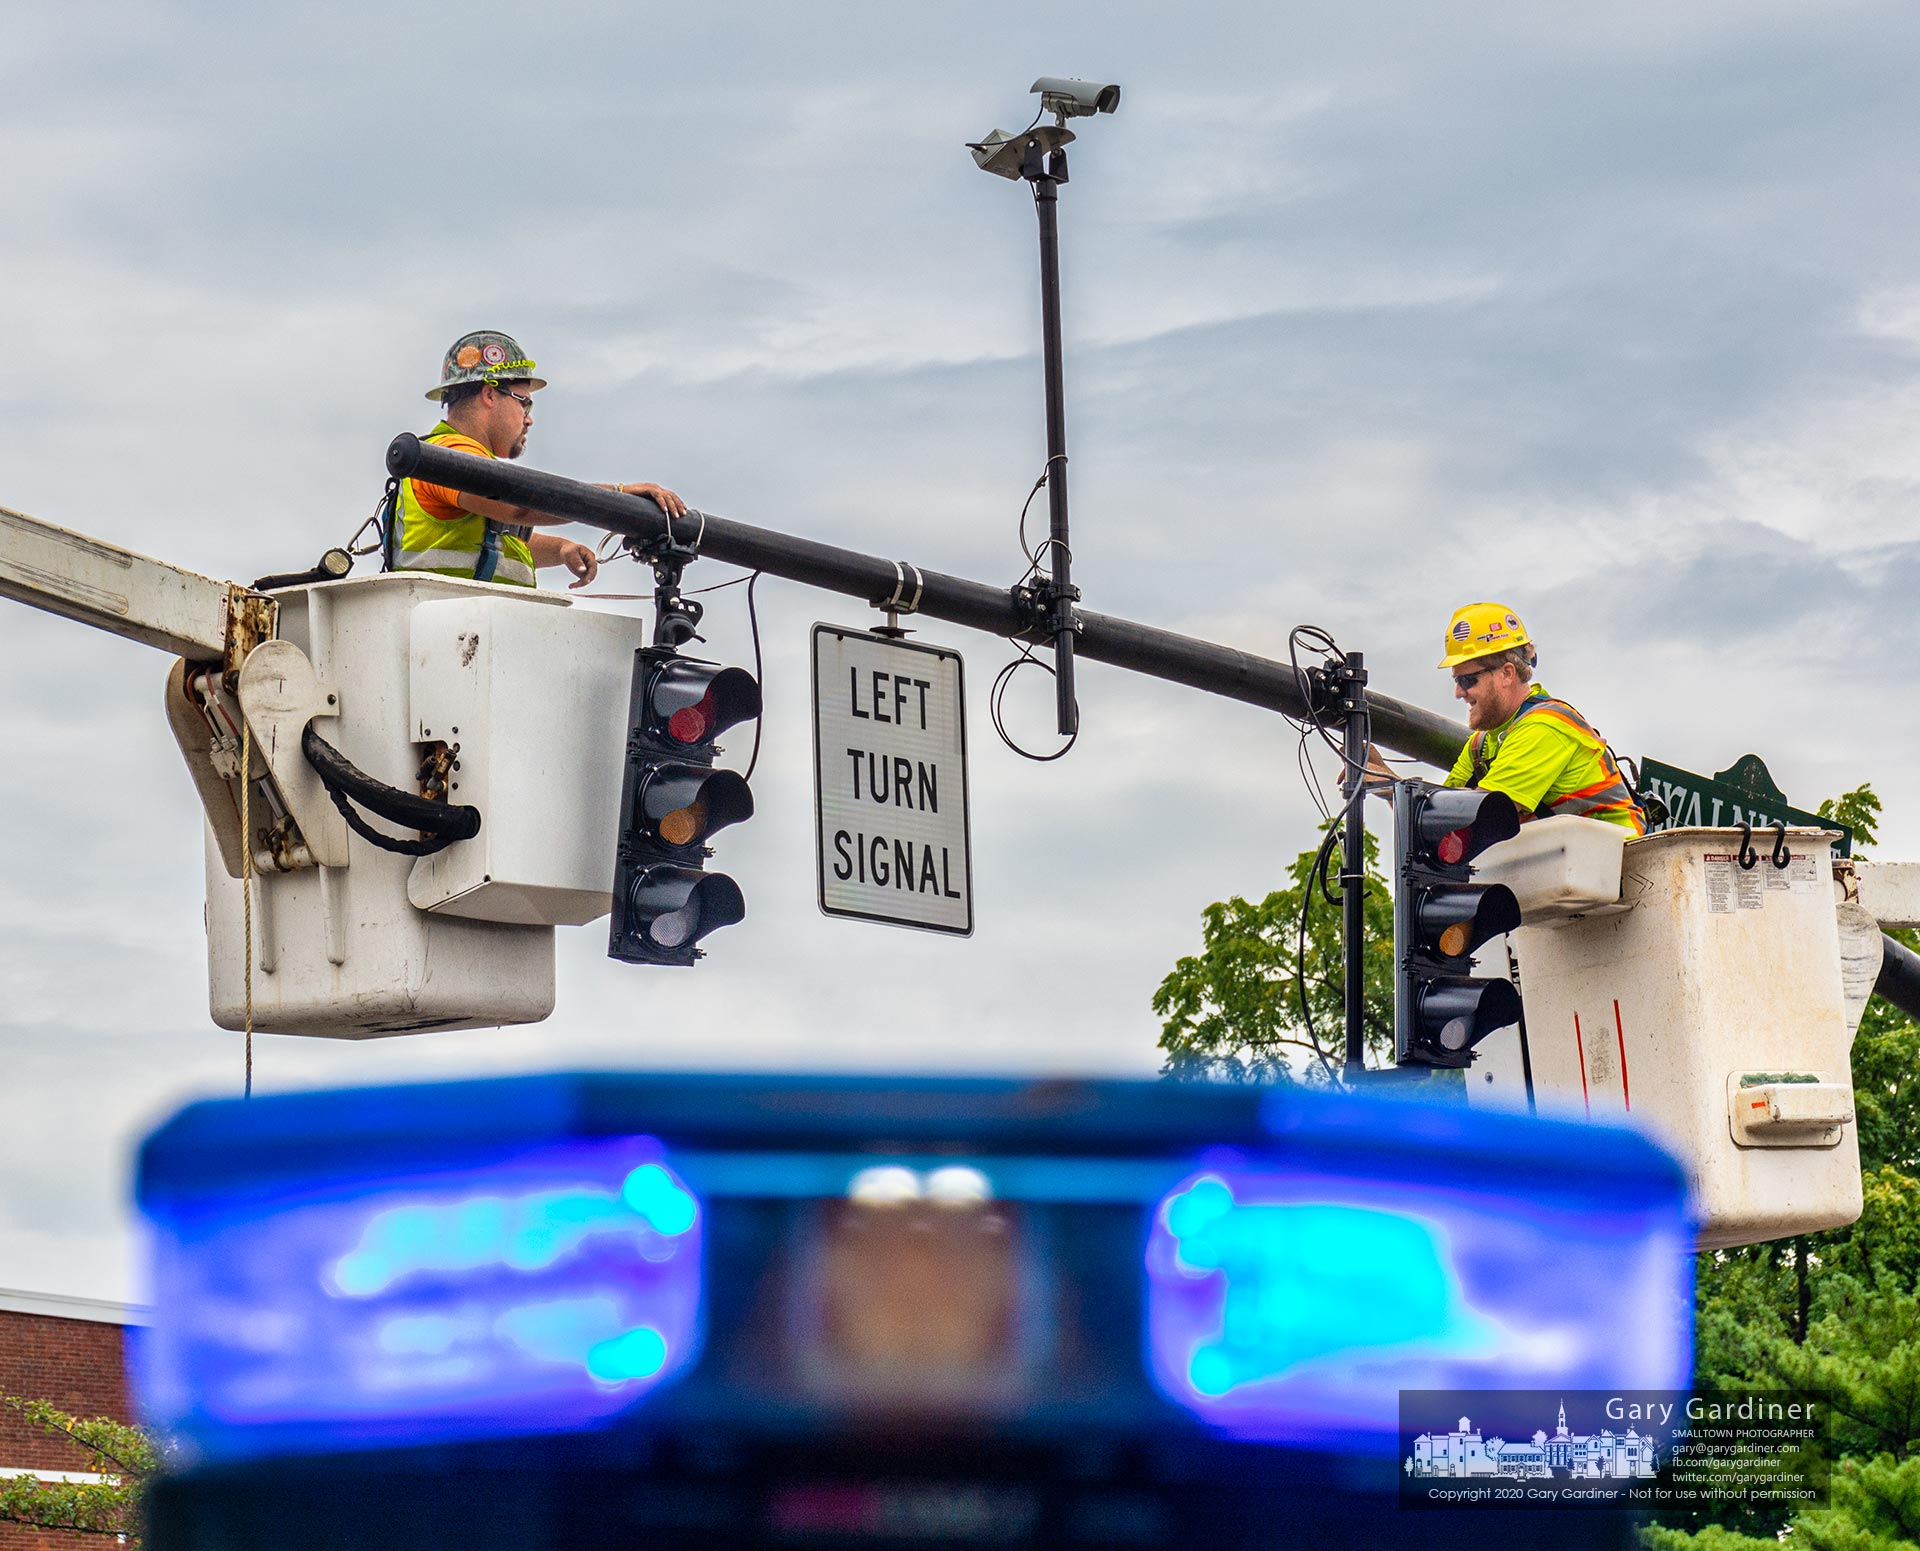 Electricians rewire the traffic signals at State and Main, the last set of signals being rewired as part of the Uptown Improvement Project. My Final Photo for Aug. 18, 2020.